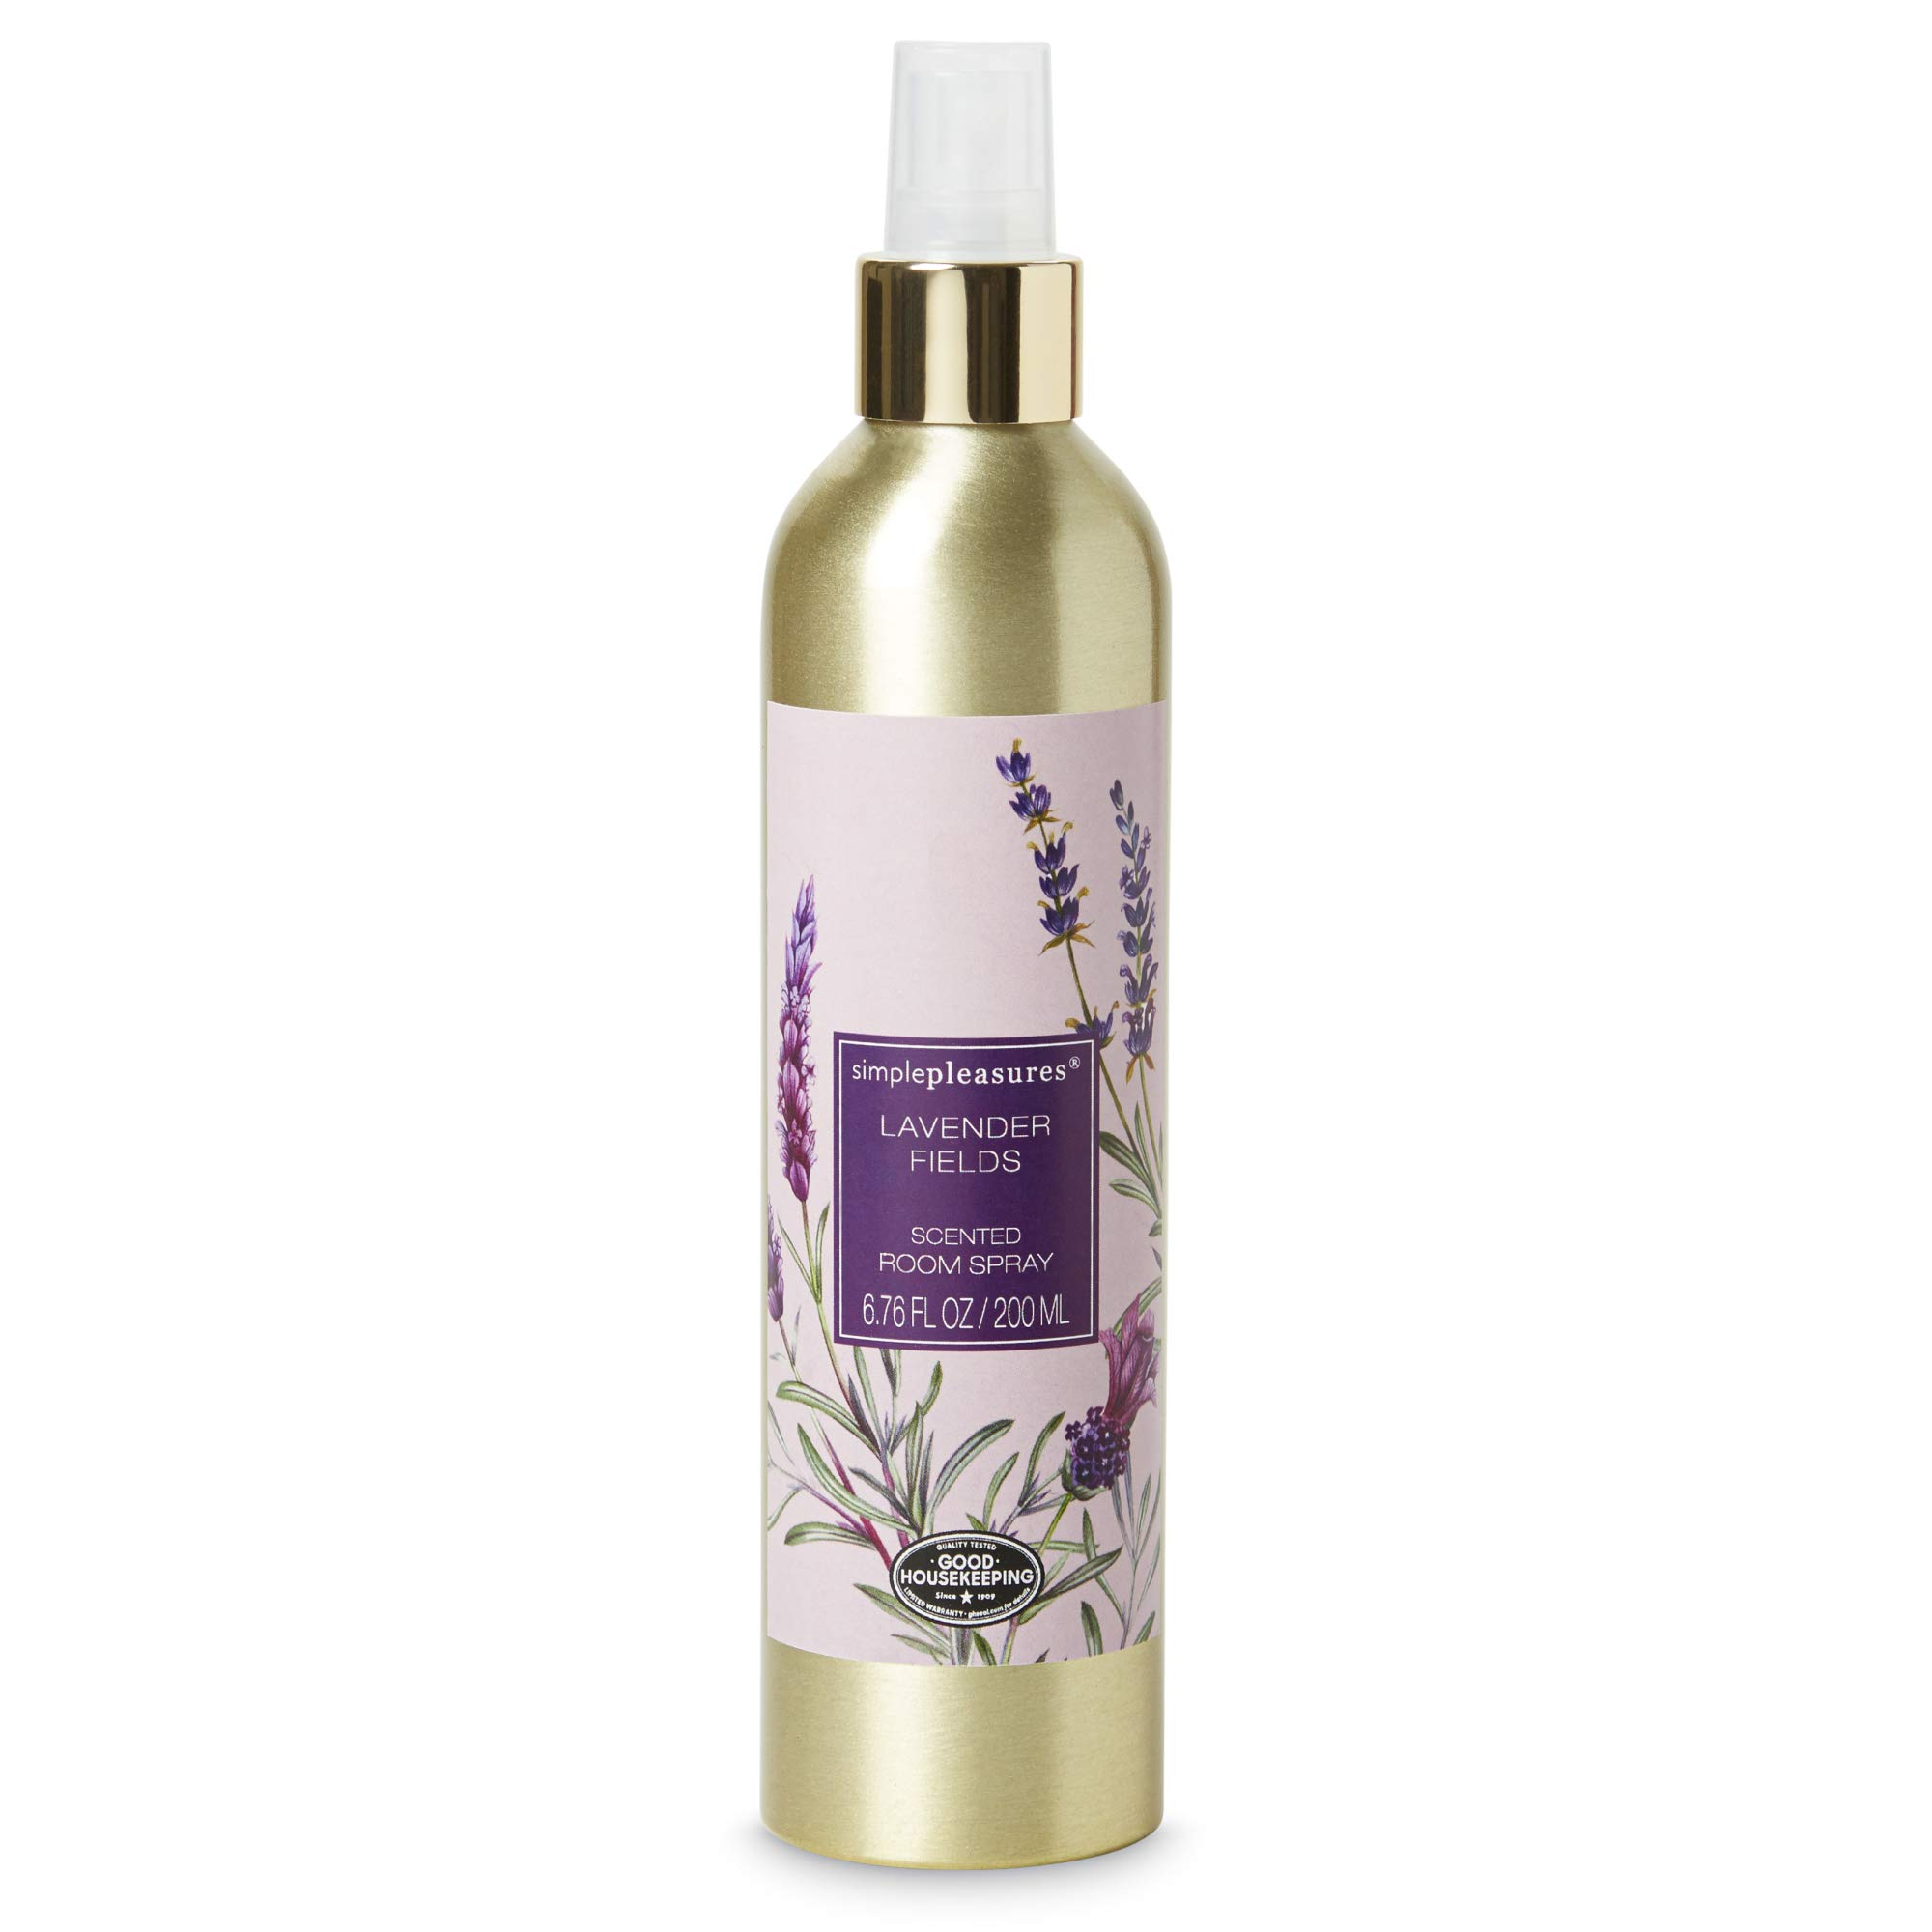 Simple Pleasures Scented Room Spray/Air Freshener For Bedrooms, Bathrooms, Kitchen, Laundry Room - Calming Lavender Fields Fragrance and Natural Odor Eliminator- Granted The Good Housekeeping Seal